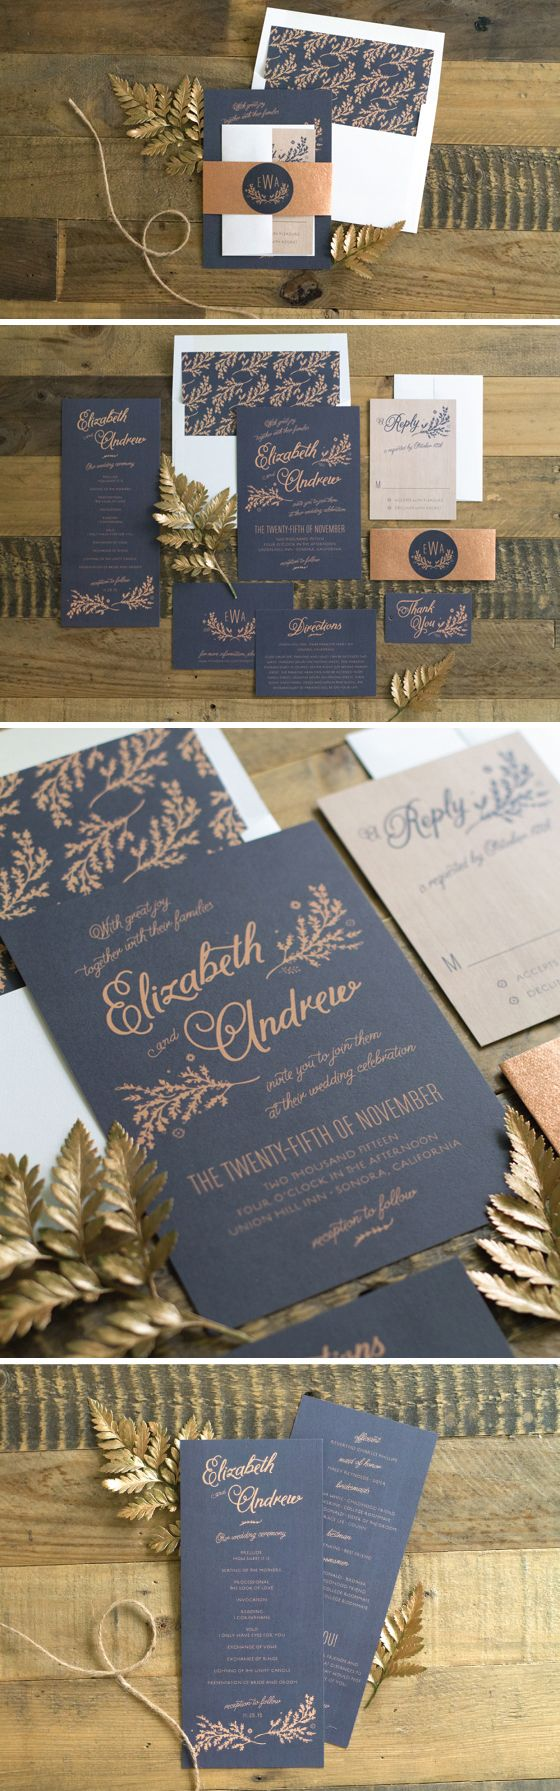 wedding invitations east london south africa%0A Rustic Wedding Invitations in Navy